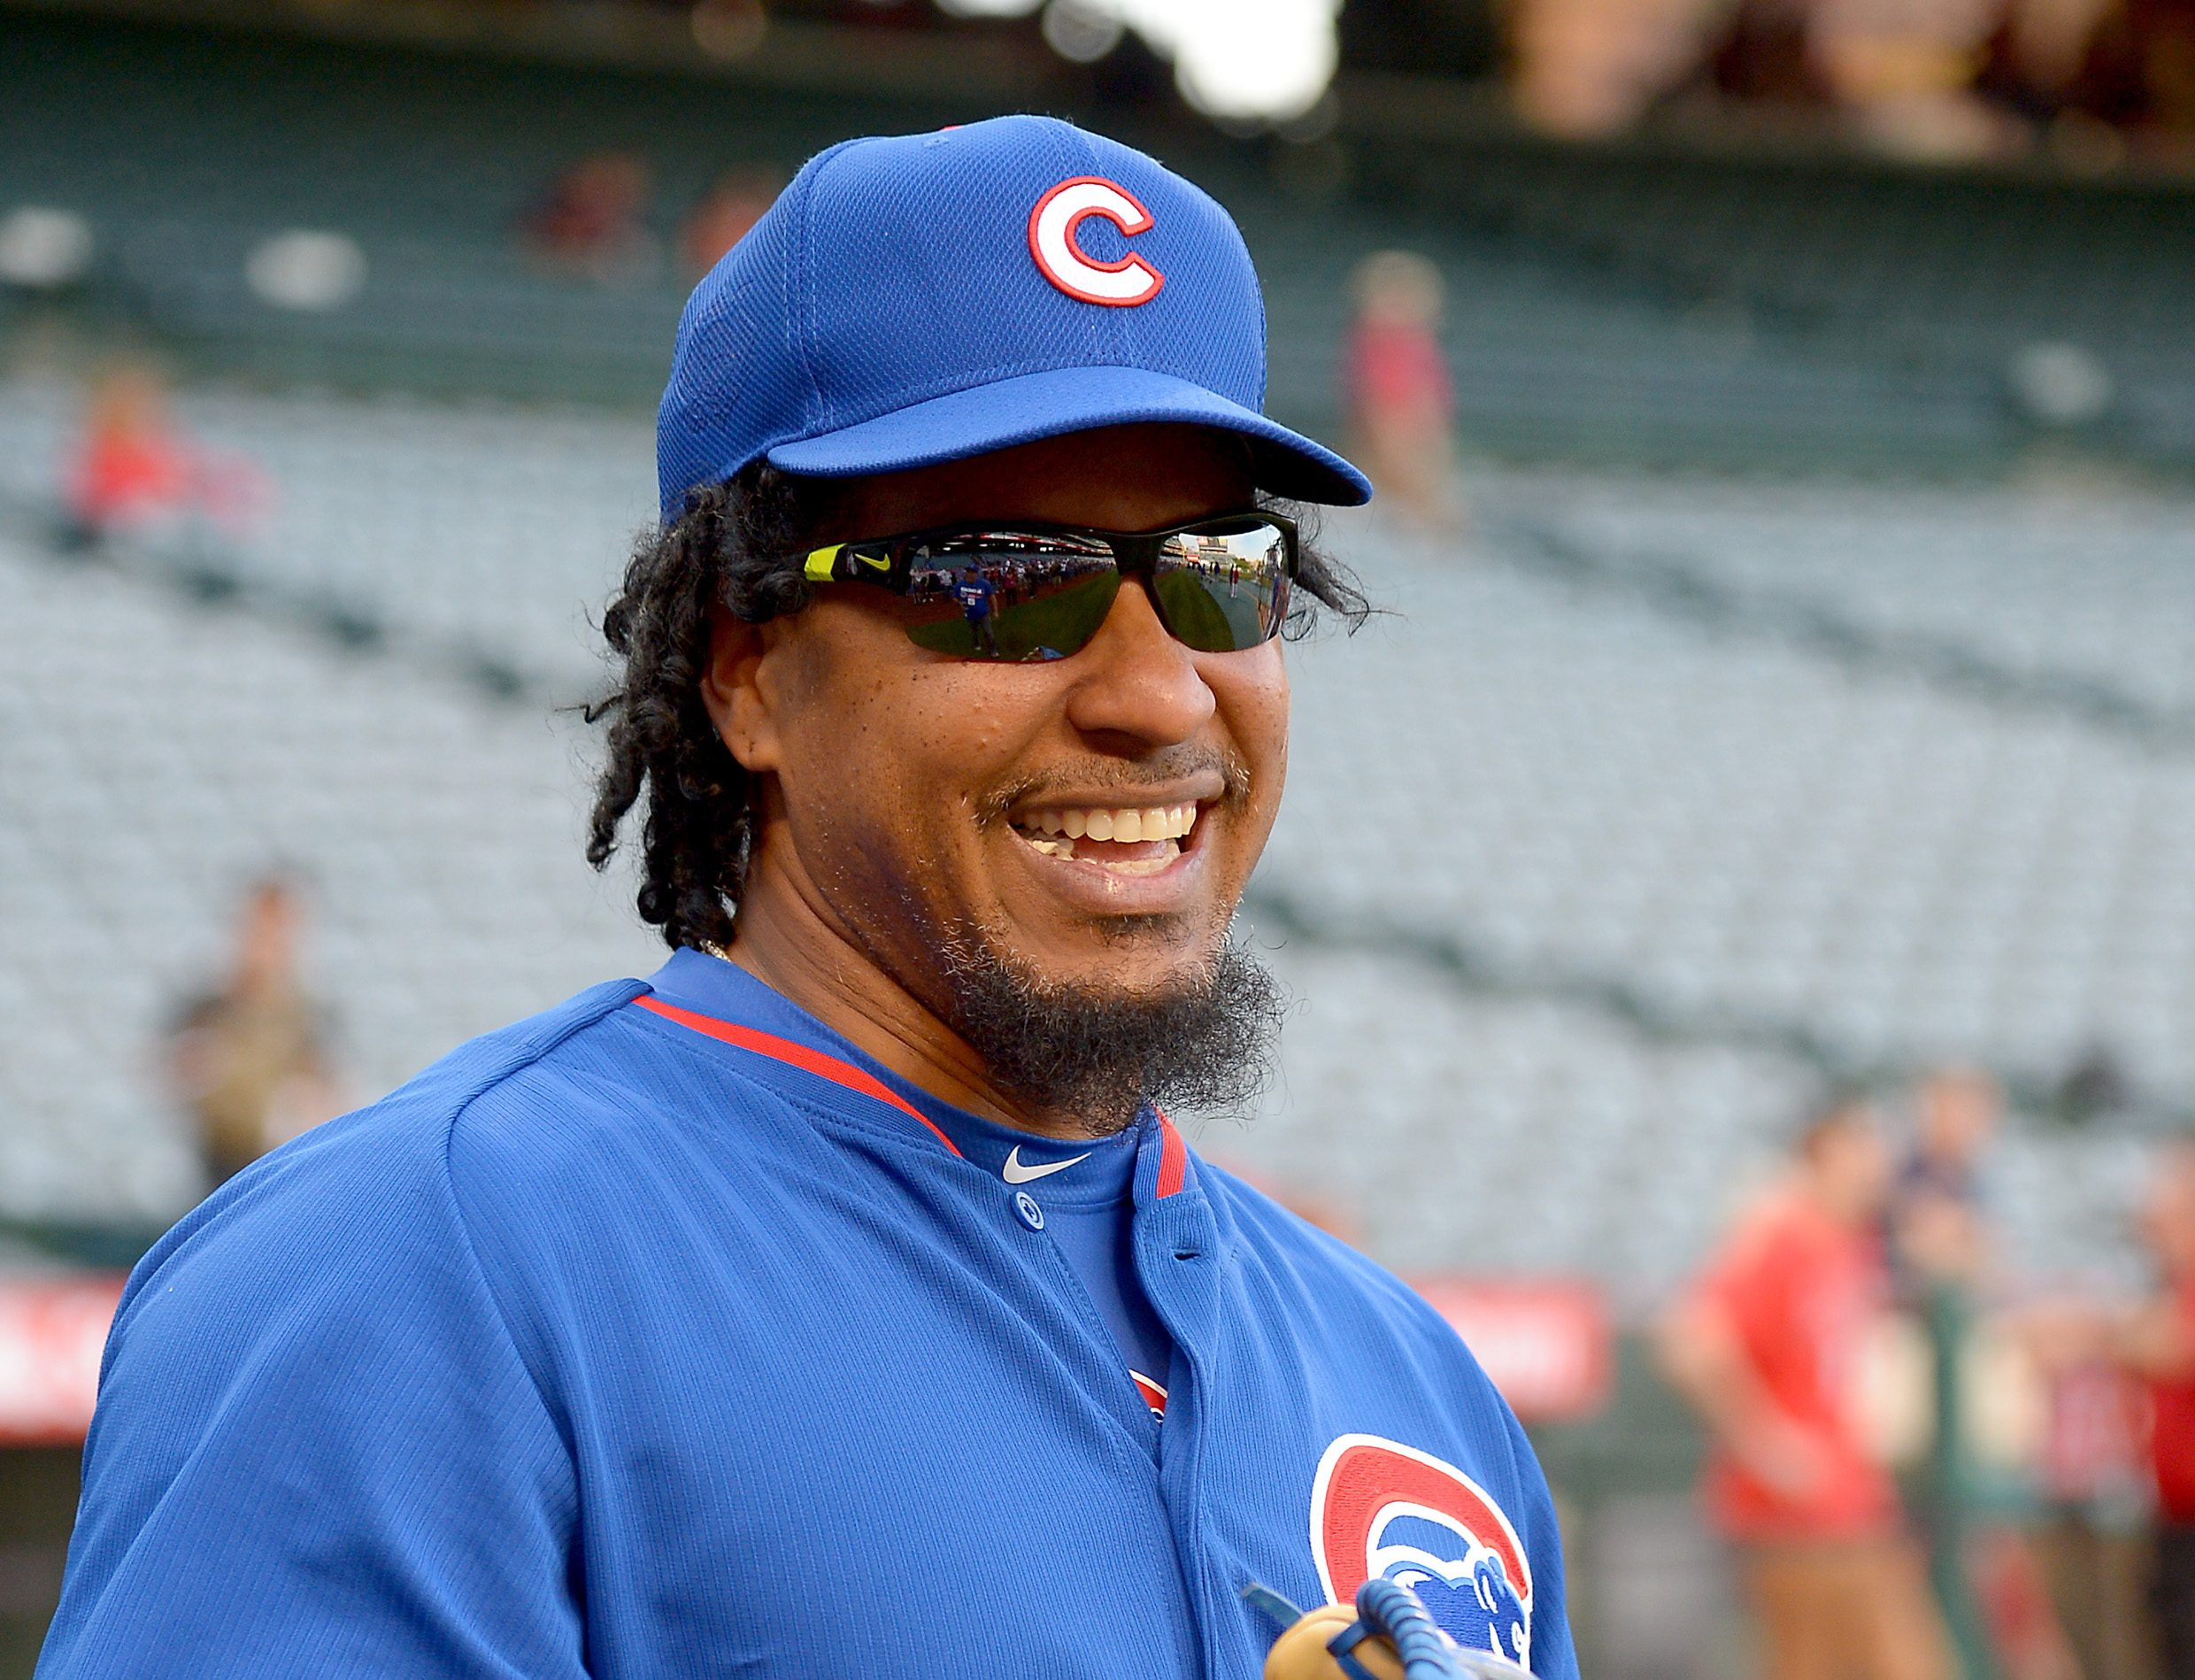 We Heard From Manny Ramirez for the First Time in a While